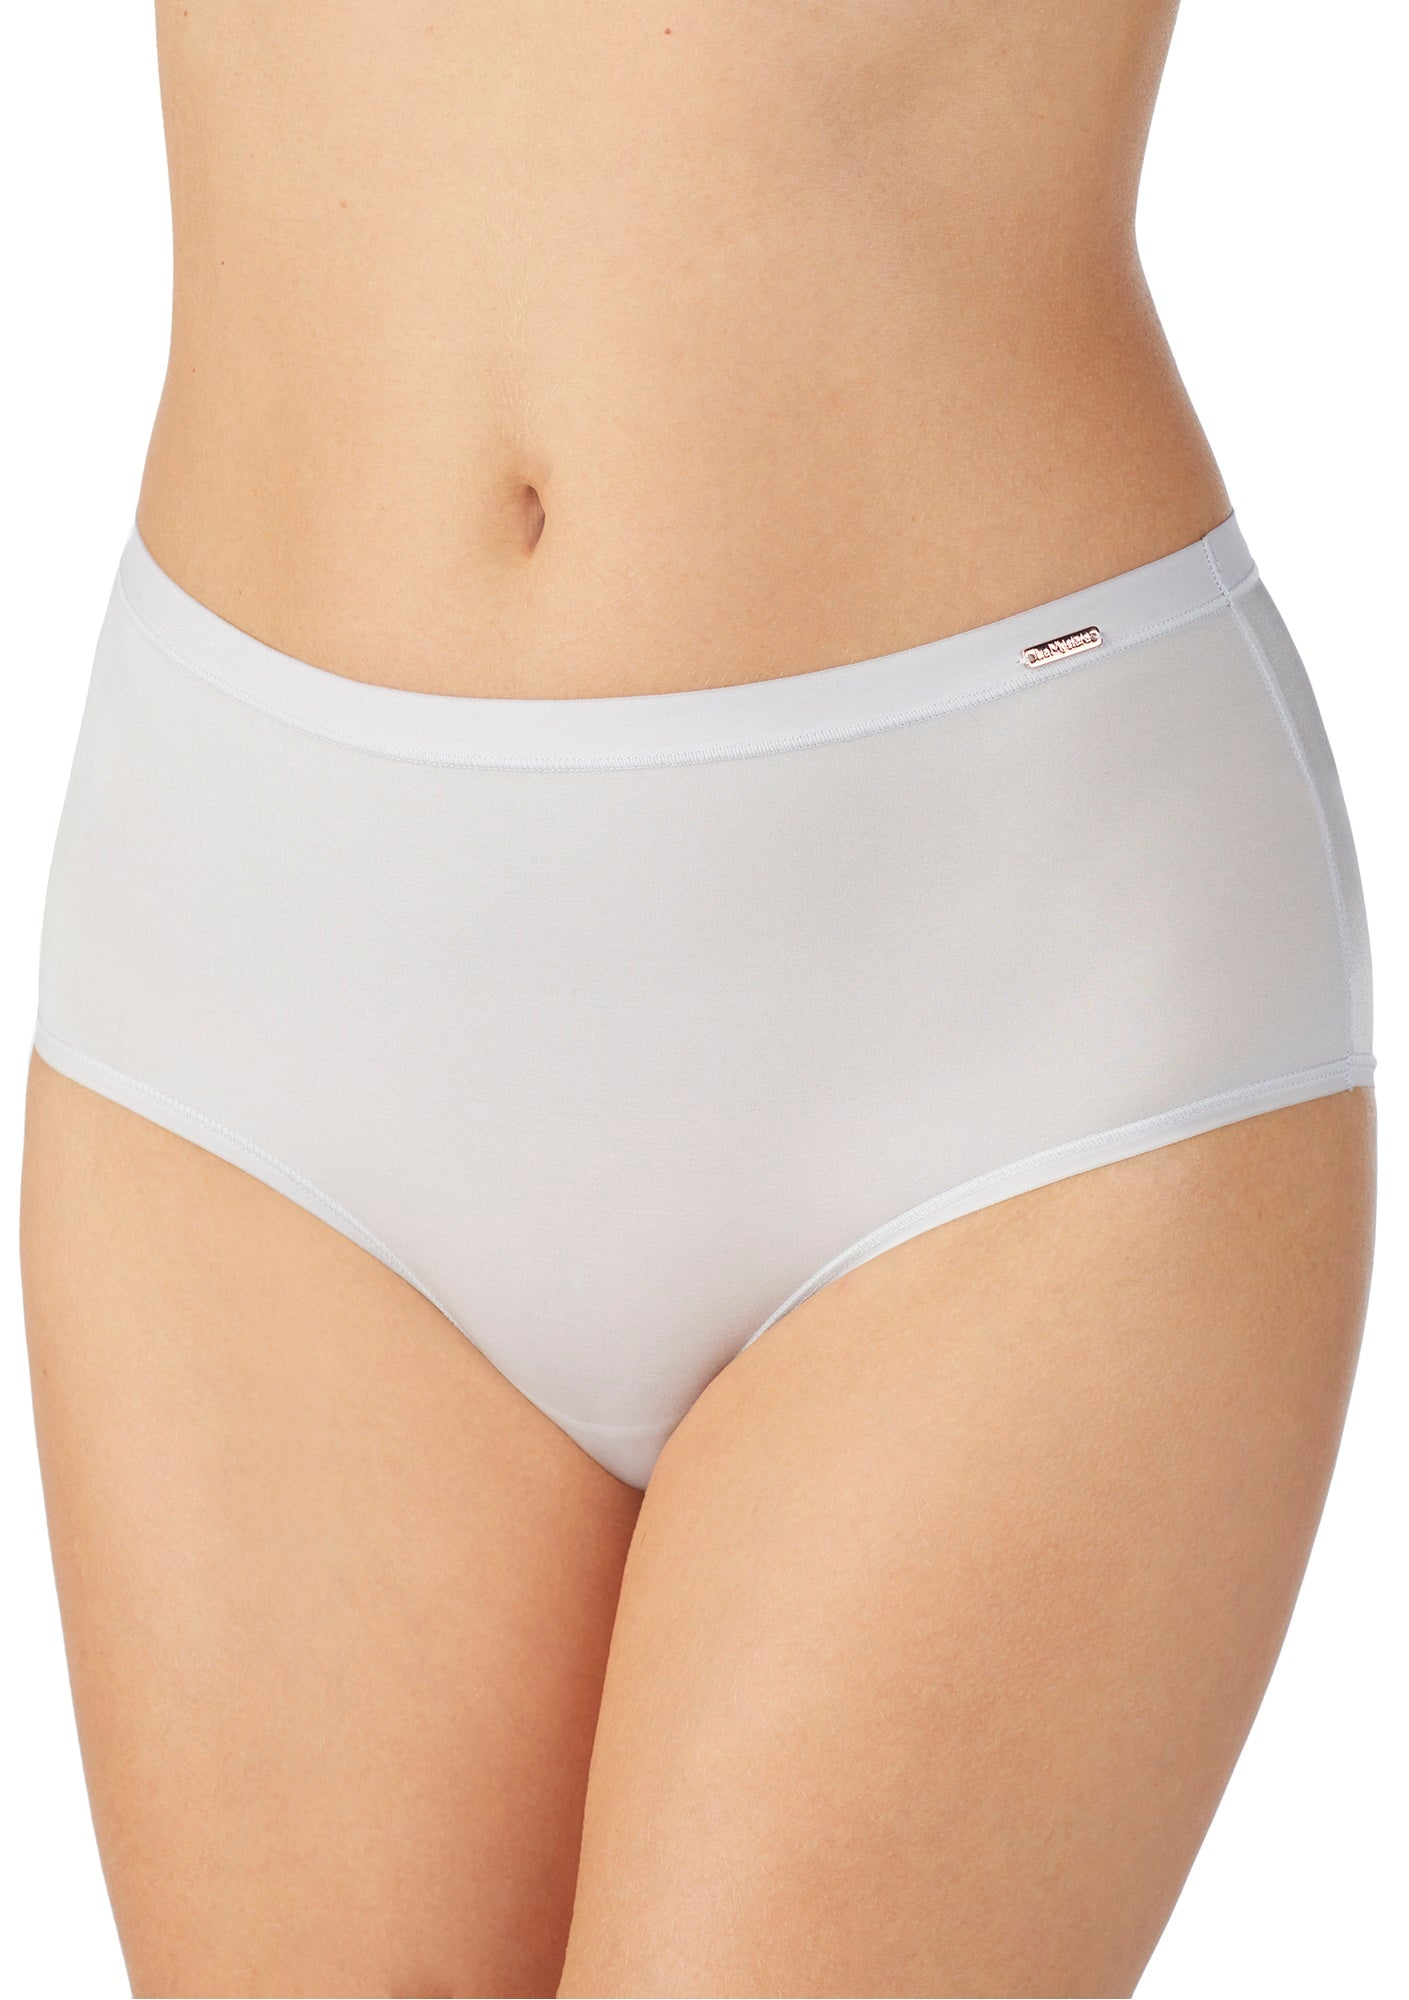 Infinite Comfort Brief- Silver Moon